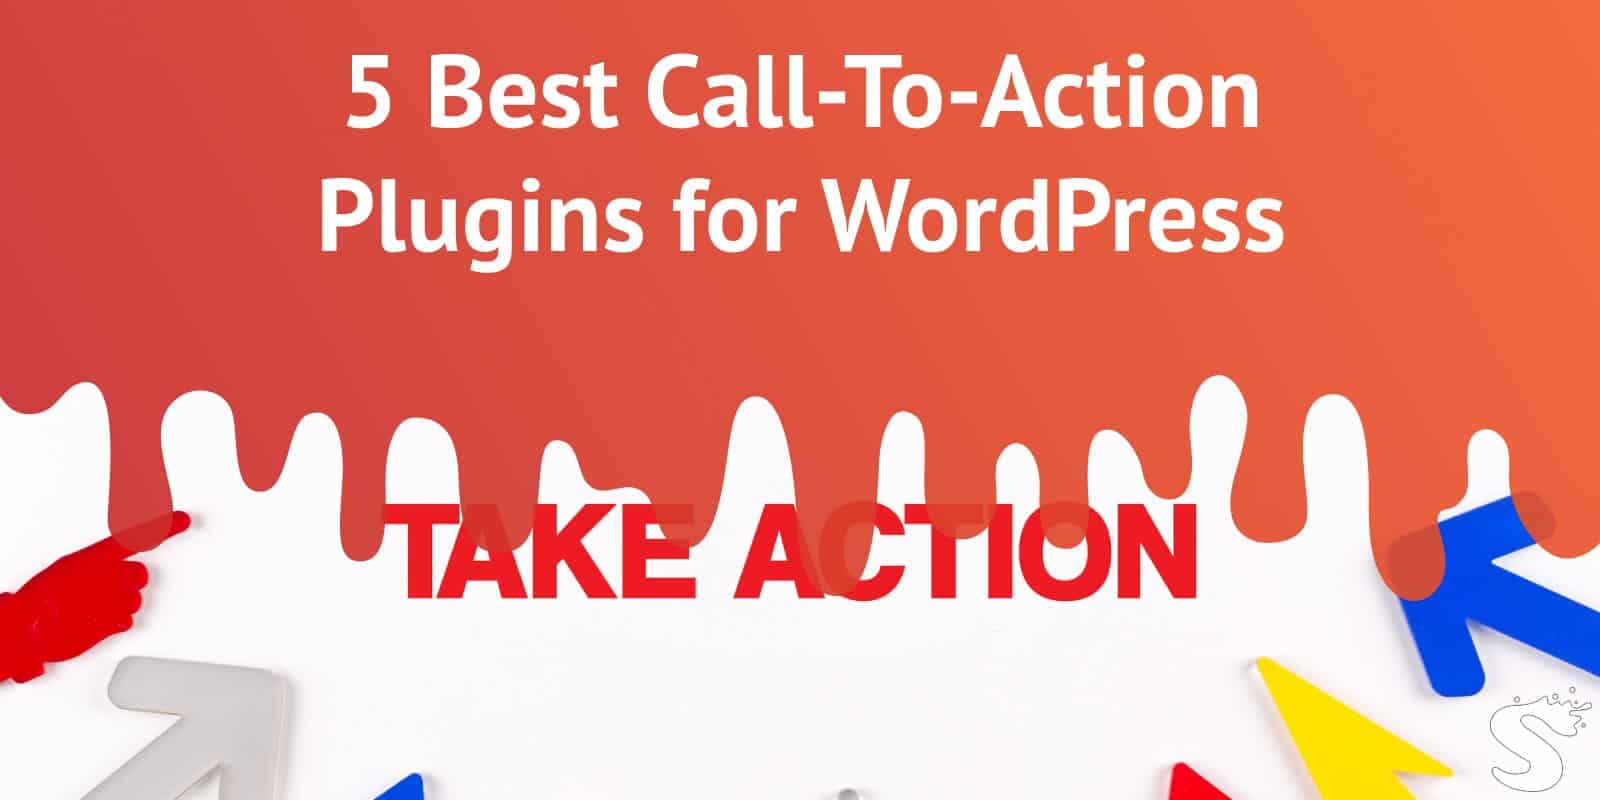 Best 5 Call-To-Action Plugins for WordPress